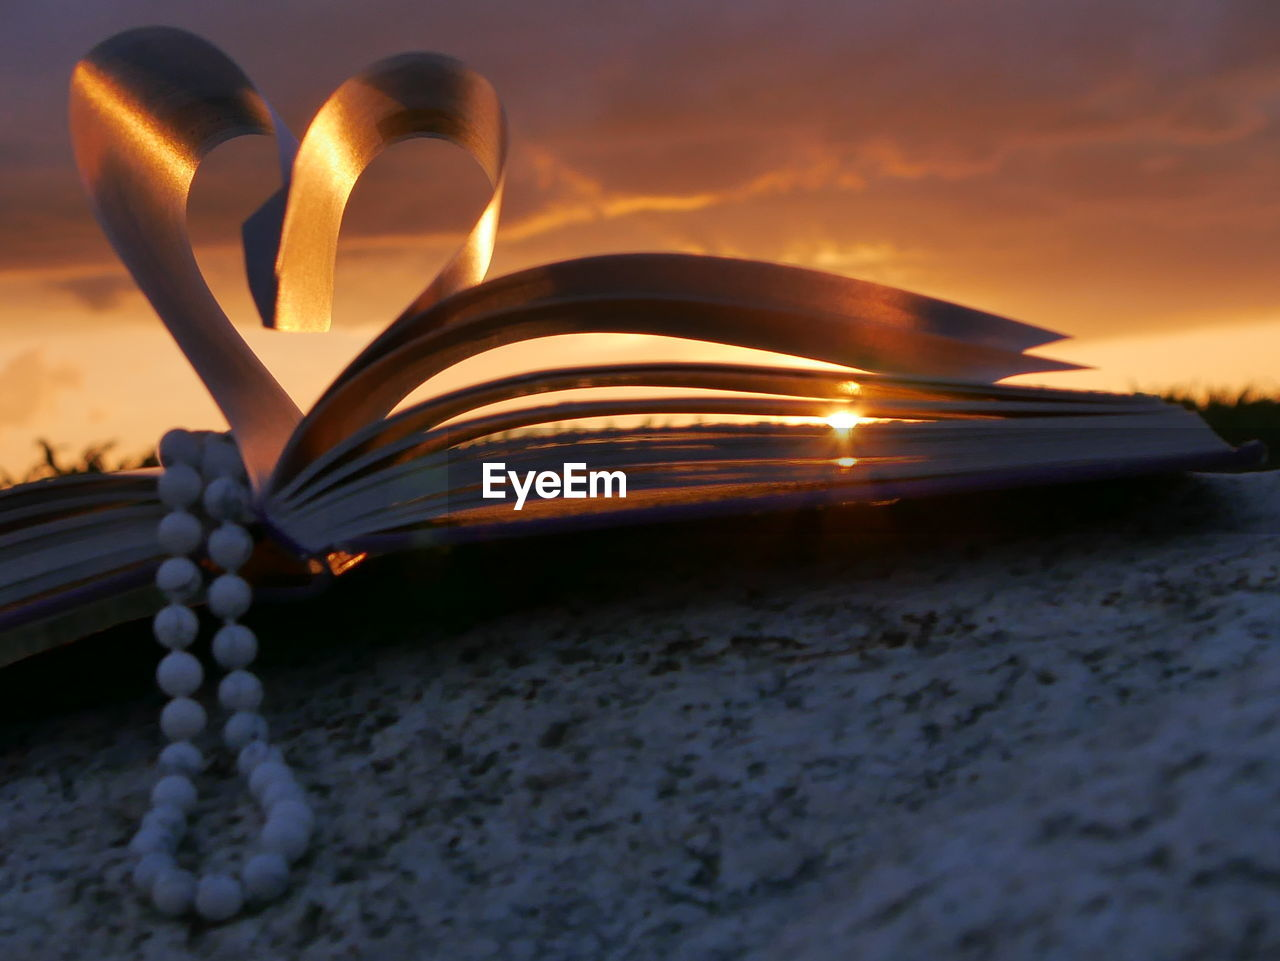 sunset, page, education, book, heart shape, rock - object, love, wisdom, beauty in nature, nature, no people, outdoors, sky, close-up